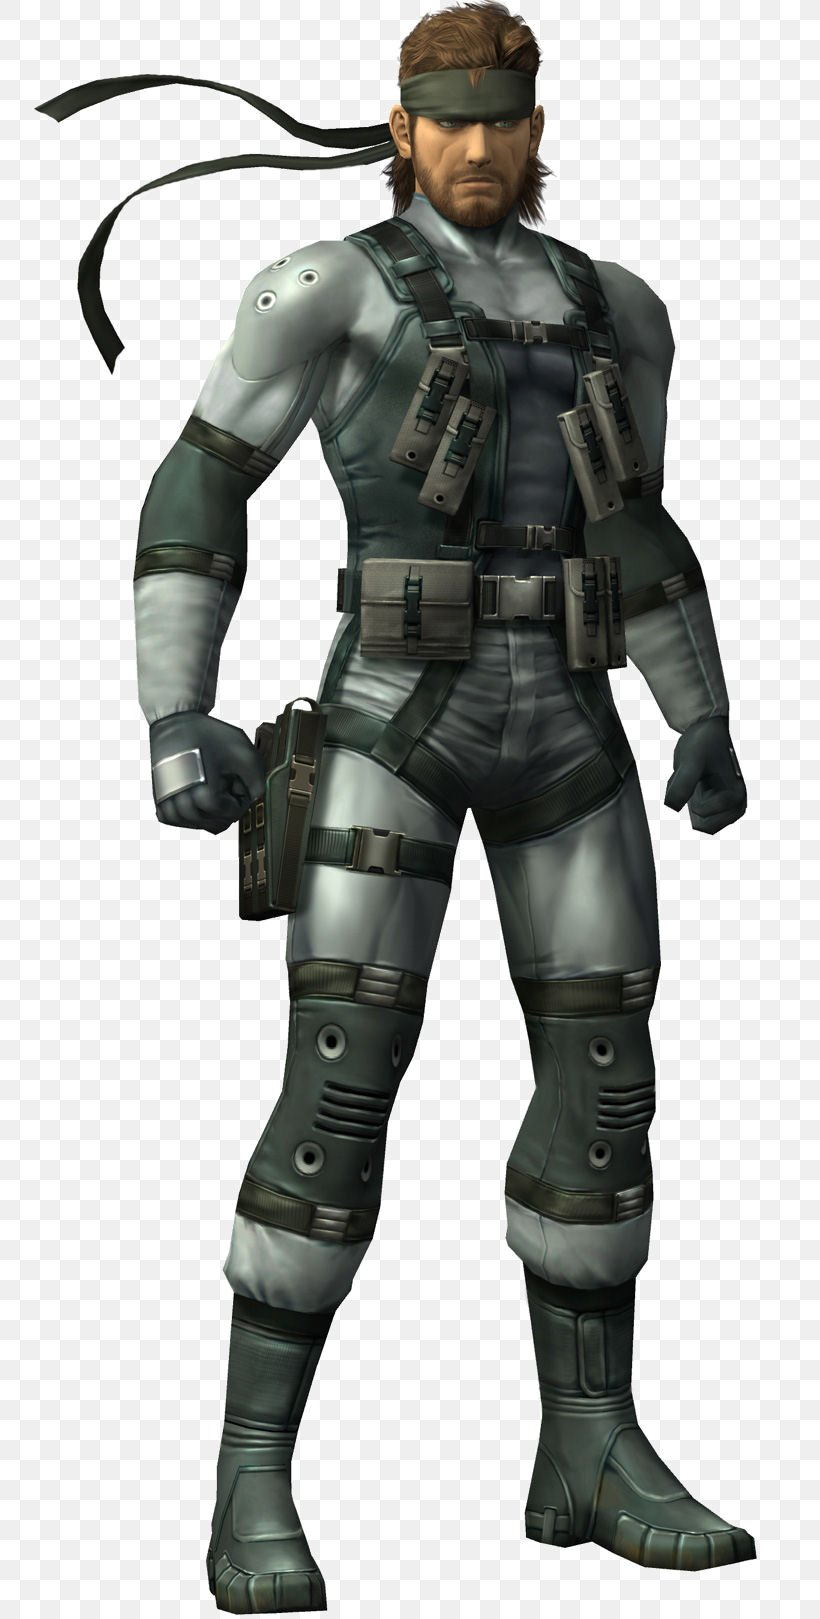 Metal Gear Solid 2: Sons Of Liberty Metal Gear 2: Solid Snake Metal Gear Solid 3: Snake Eater Metal Gear Solid 4: Guns Of The Patriots, PNG, 755x1619px, Metal Gear Solid 2 Sons Of Liberty, Action Figure, Armour, Big Boss, Cuirass Download Free